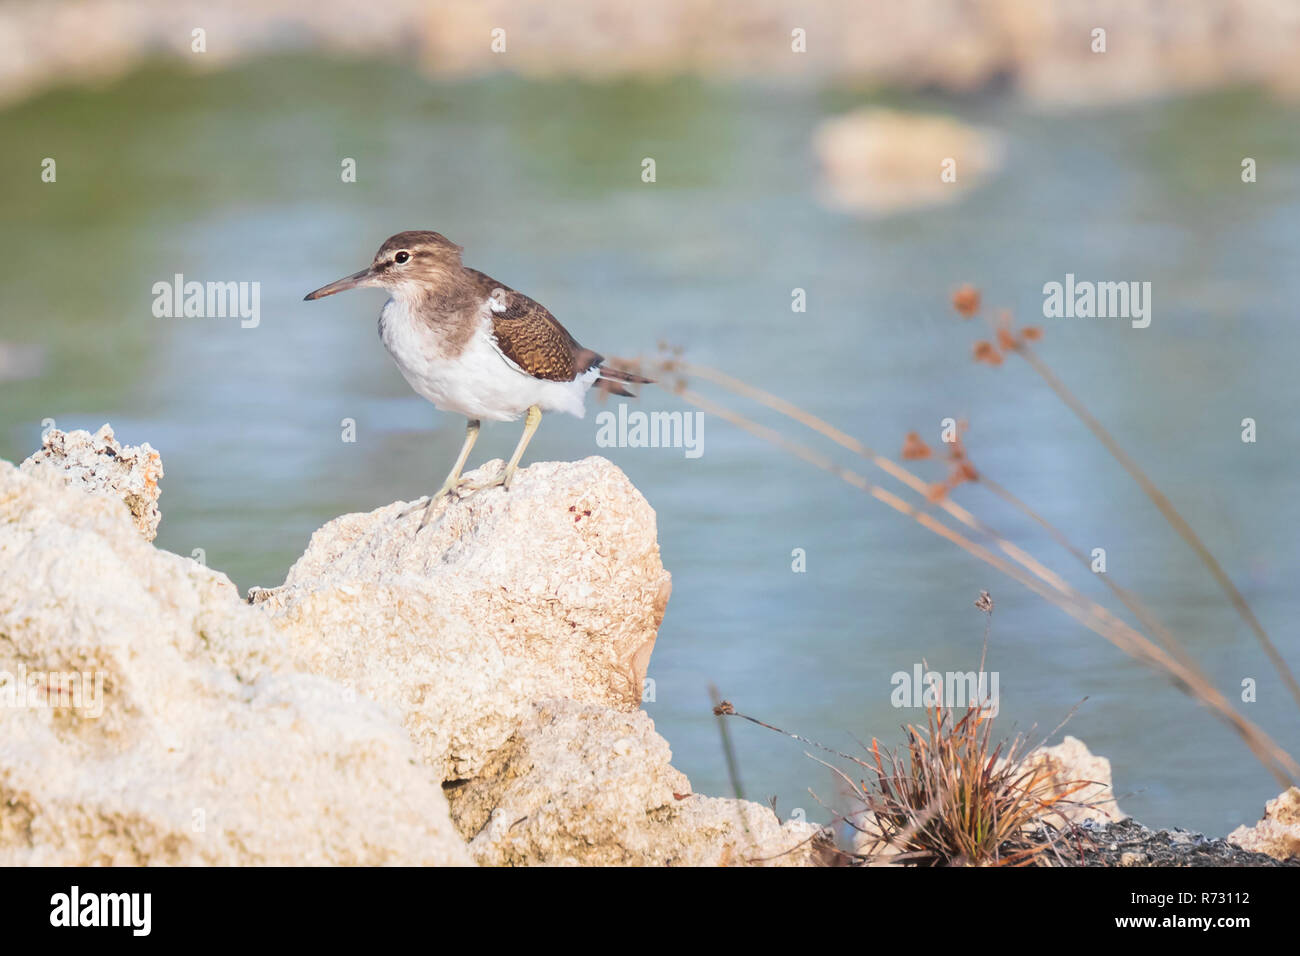 Common Sandpiper Actitis hypoleucos bird on the lookout perched on a rock - Stock Image